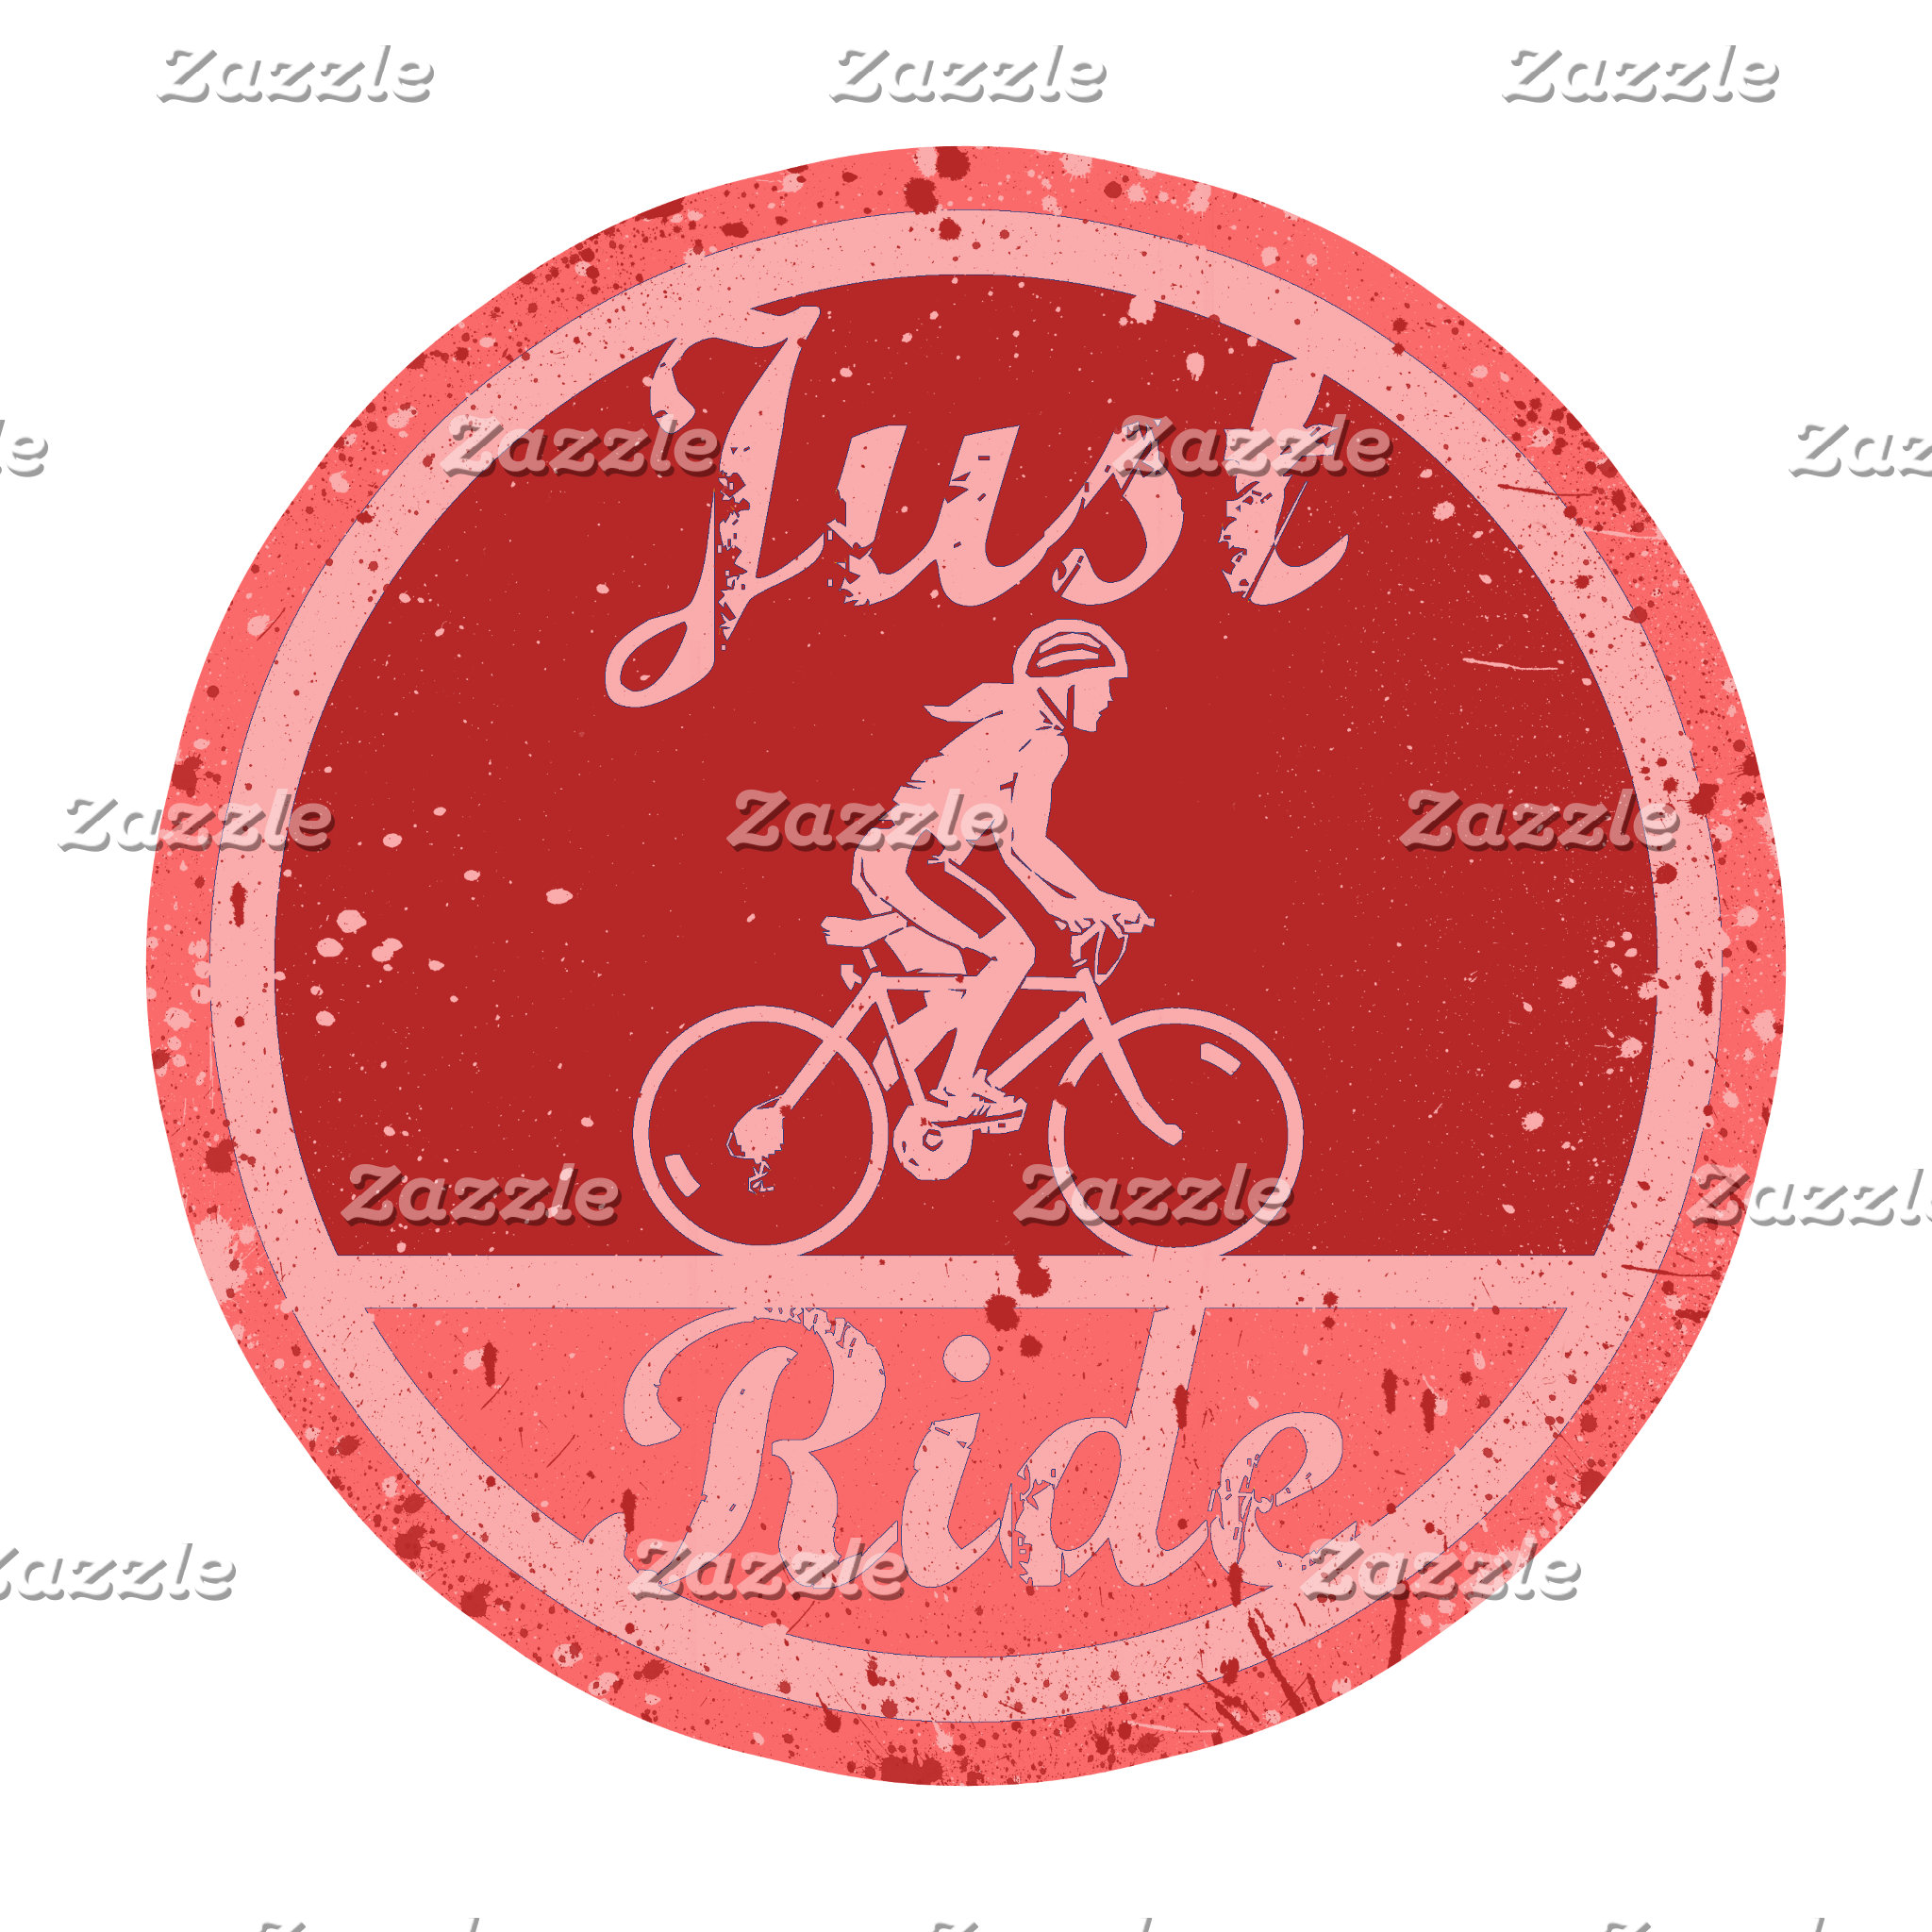 Just Ride Pink Paint Splashes for Female Cyclists